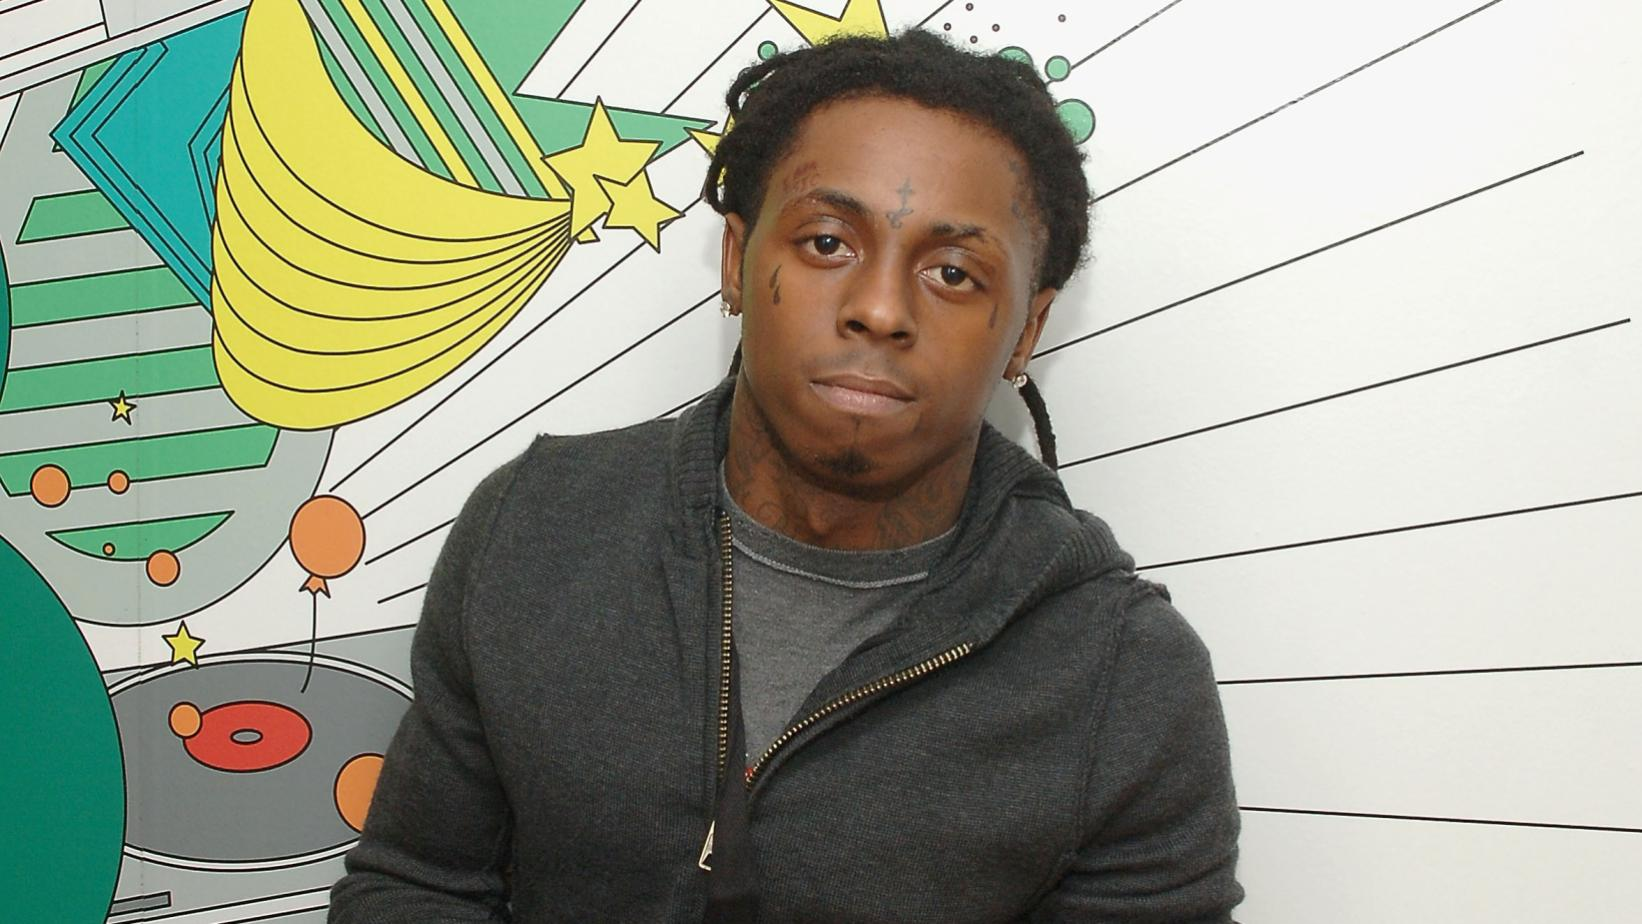 Lil Wayne photographed in 2008